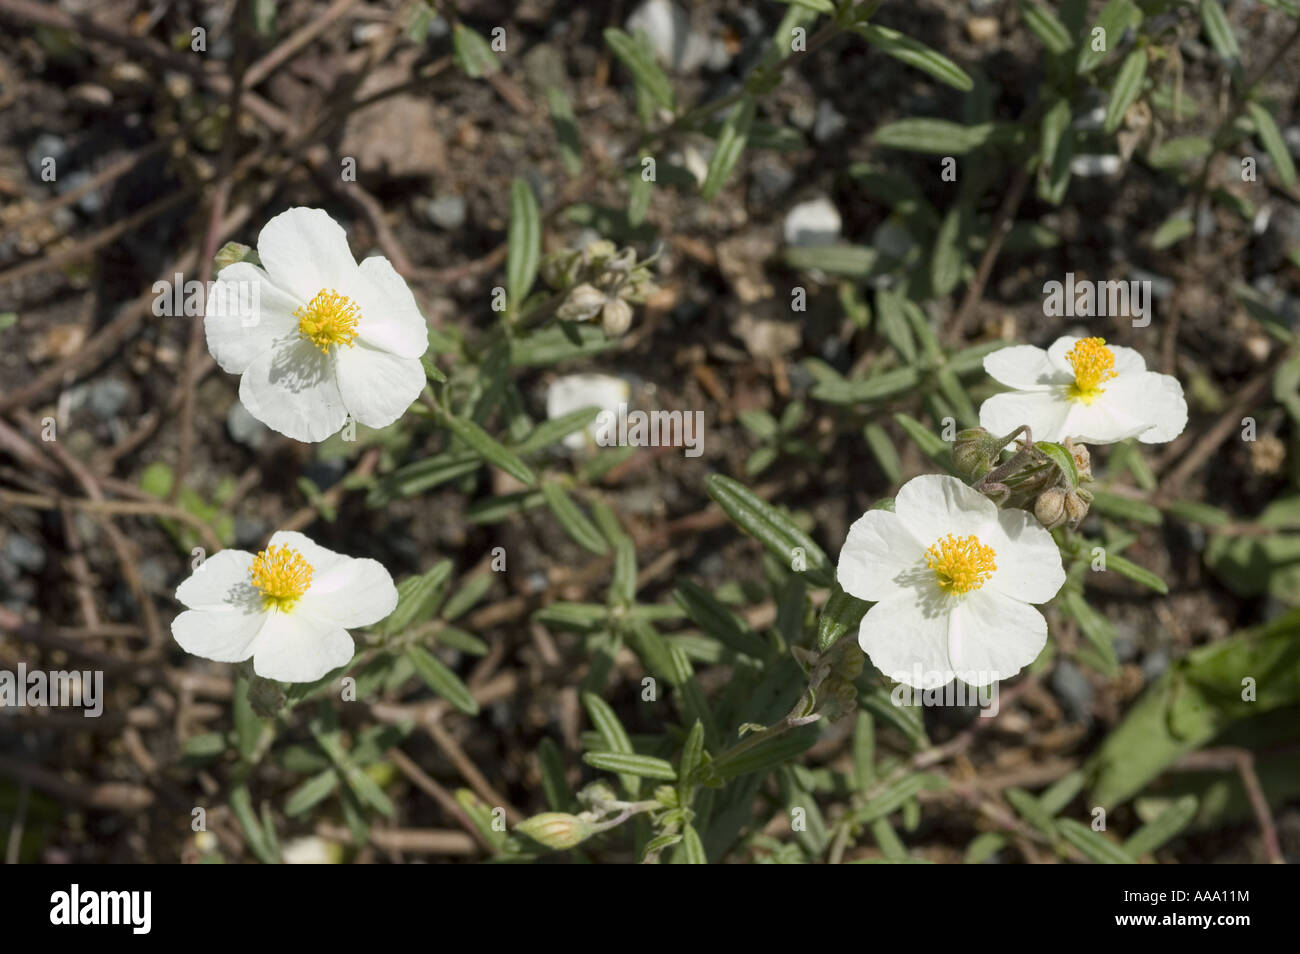 White Yellow Spring Flowers Of White Rock Rose Is A White Flowering